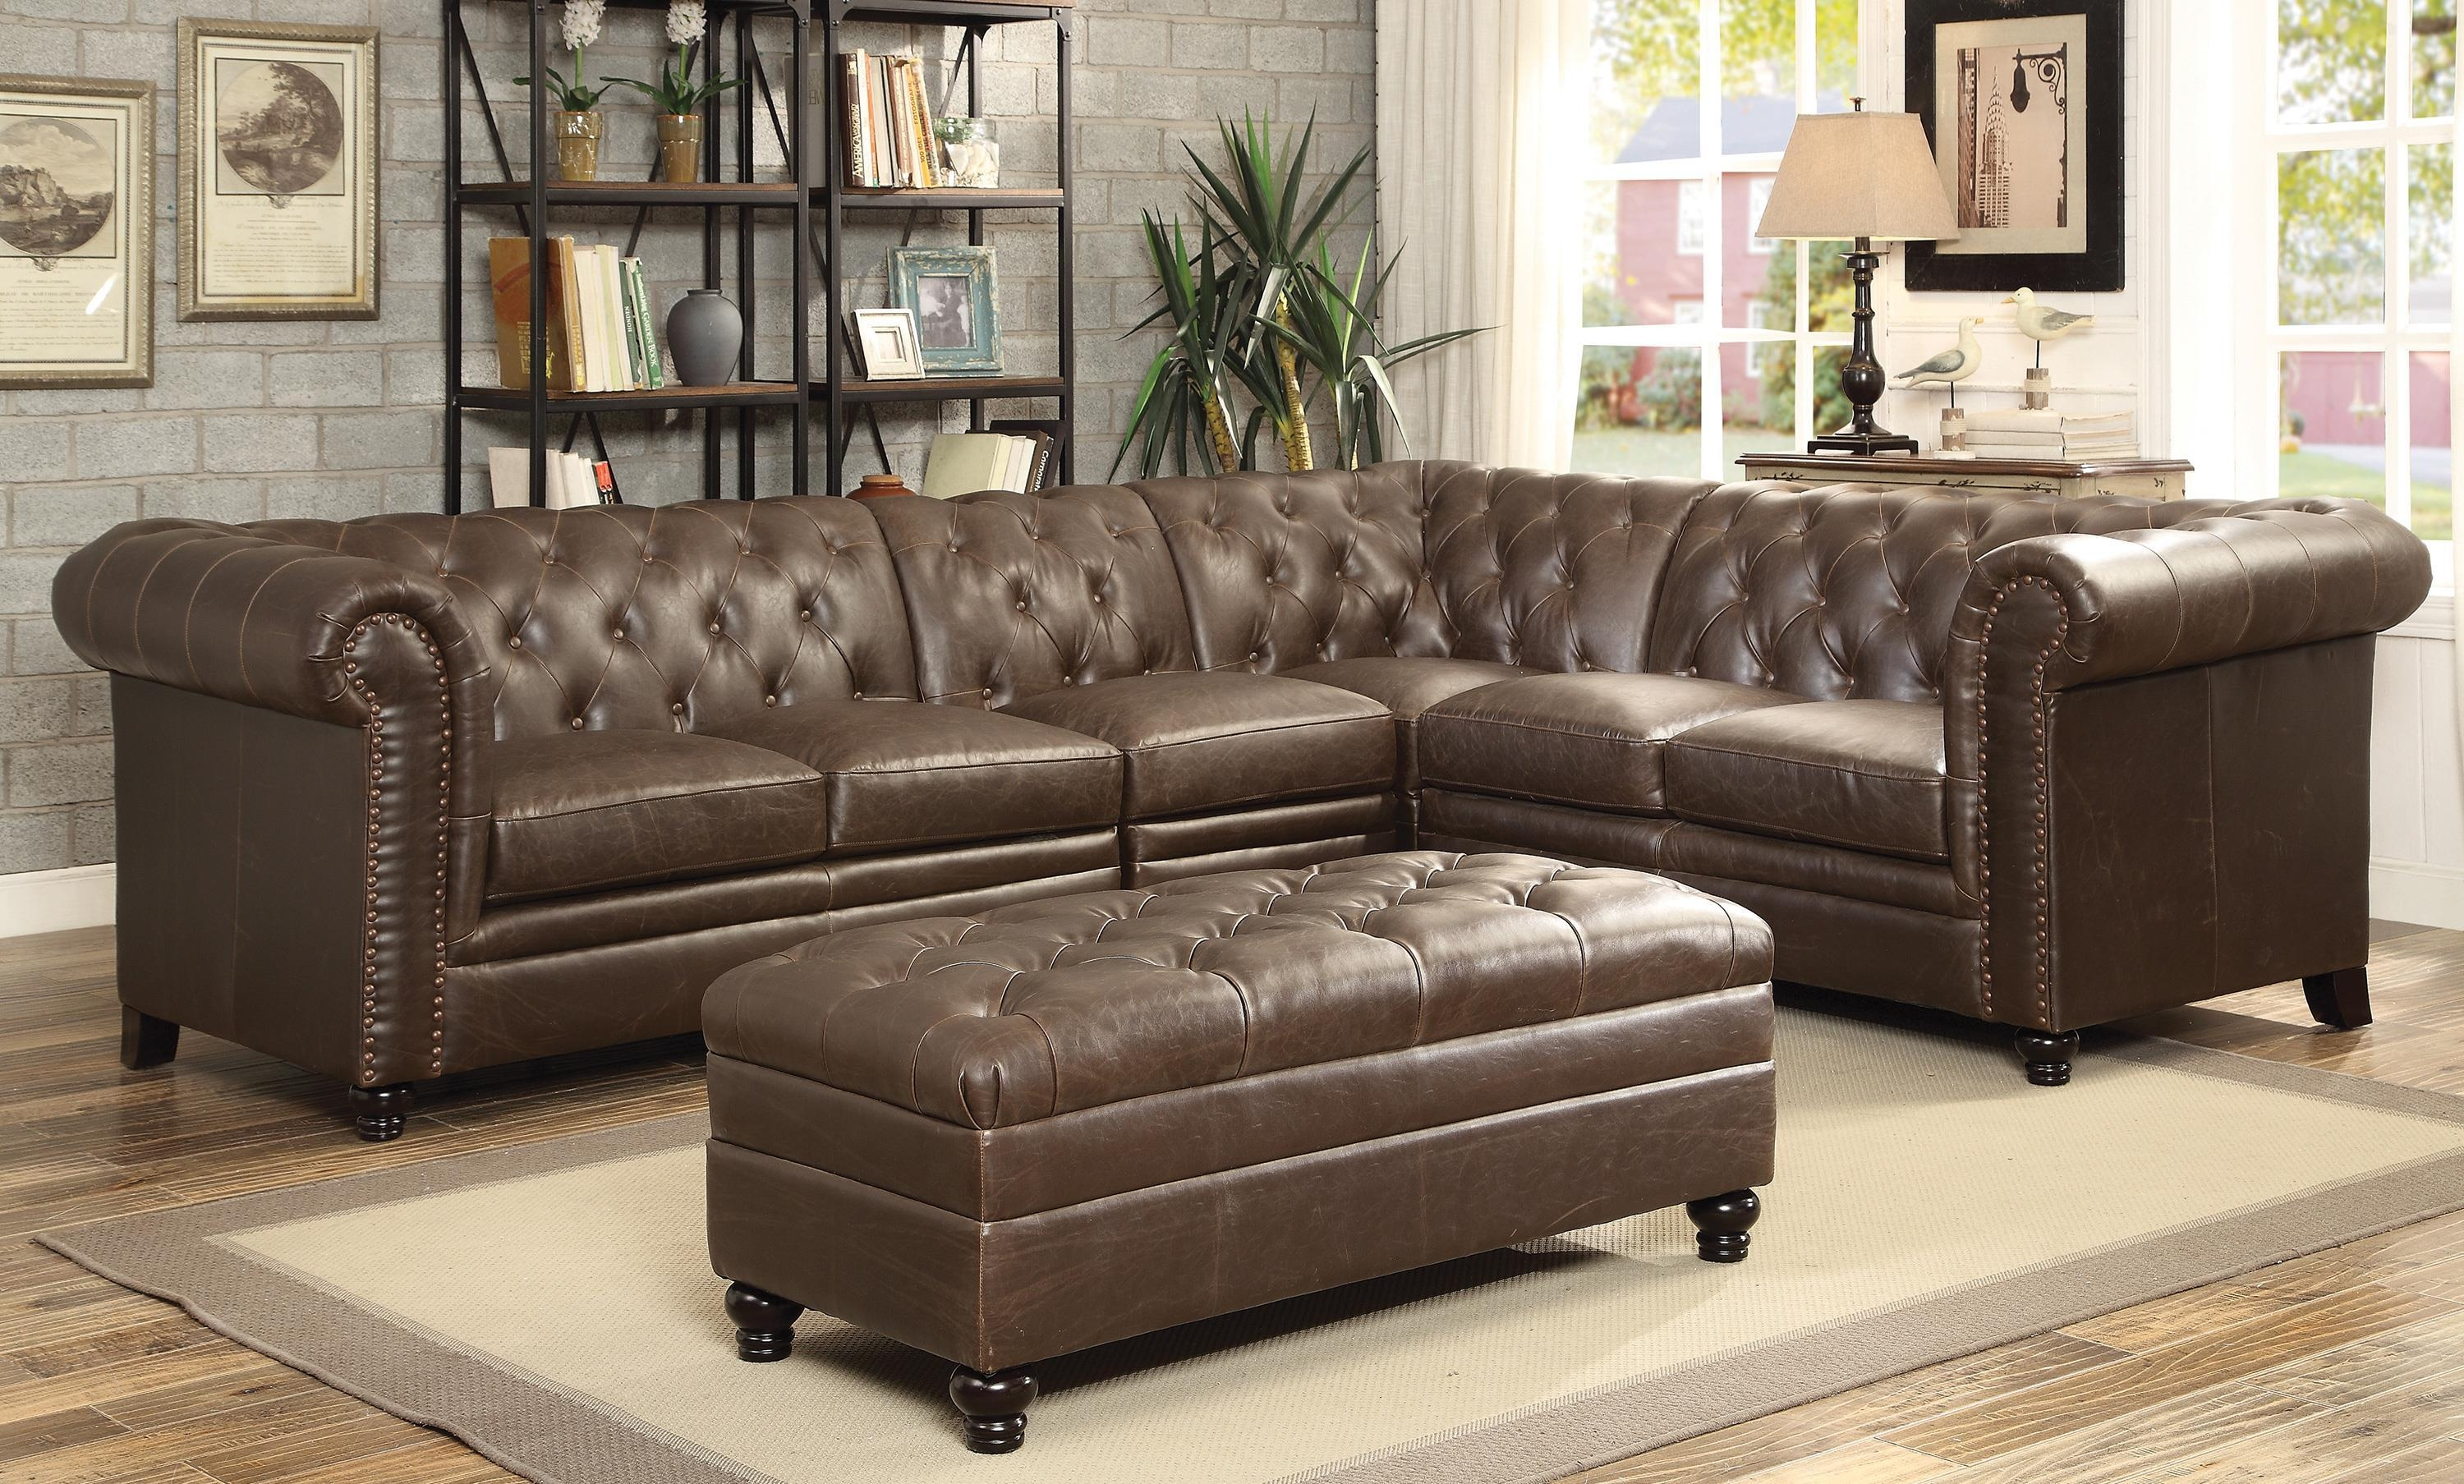 Living Room : Luxury Microfiber Sectional Sofa With Chaise Inside Cheap Tufted Sofas (View 16 of 23)